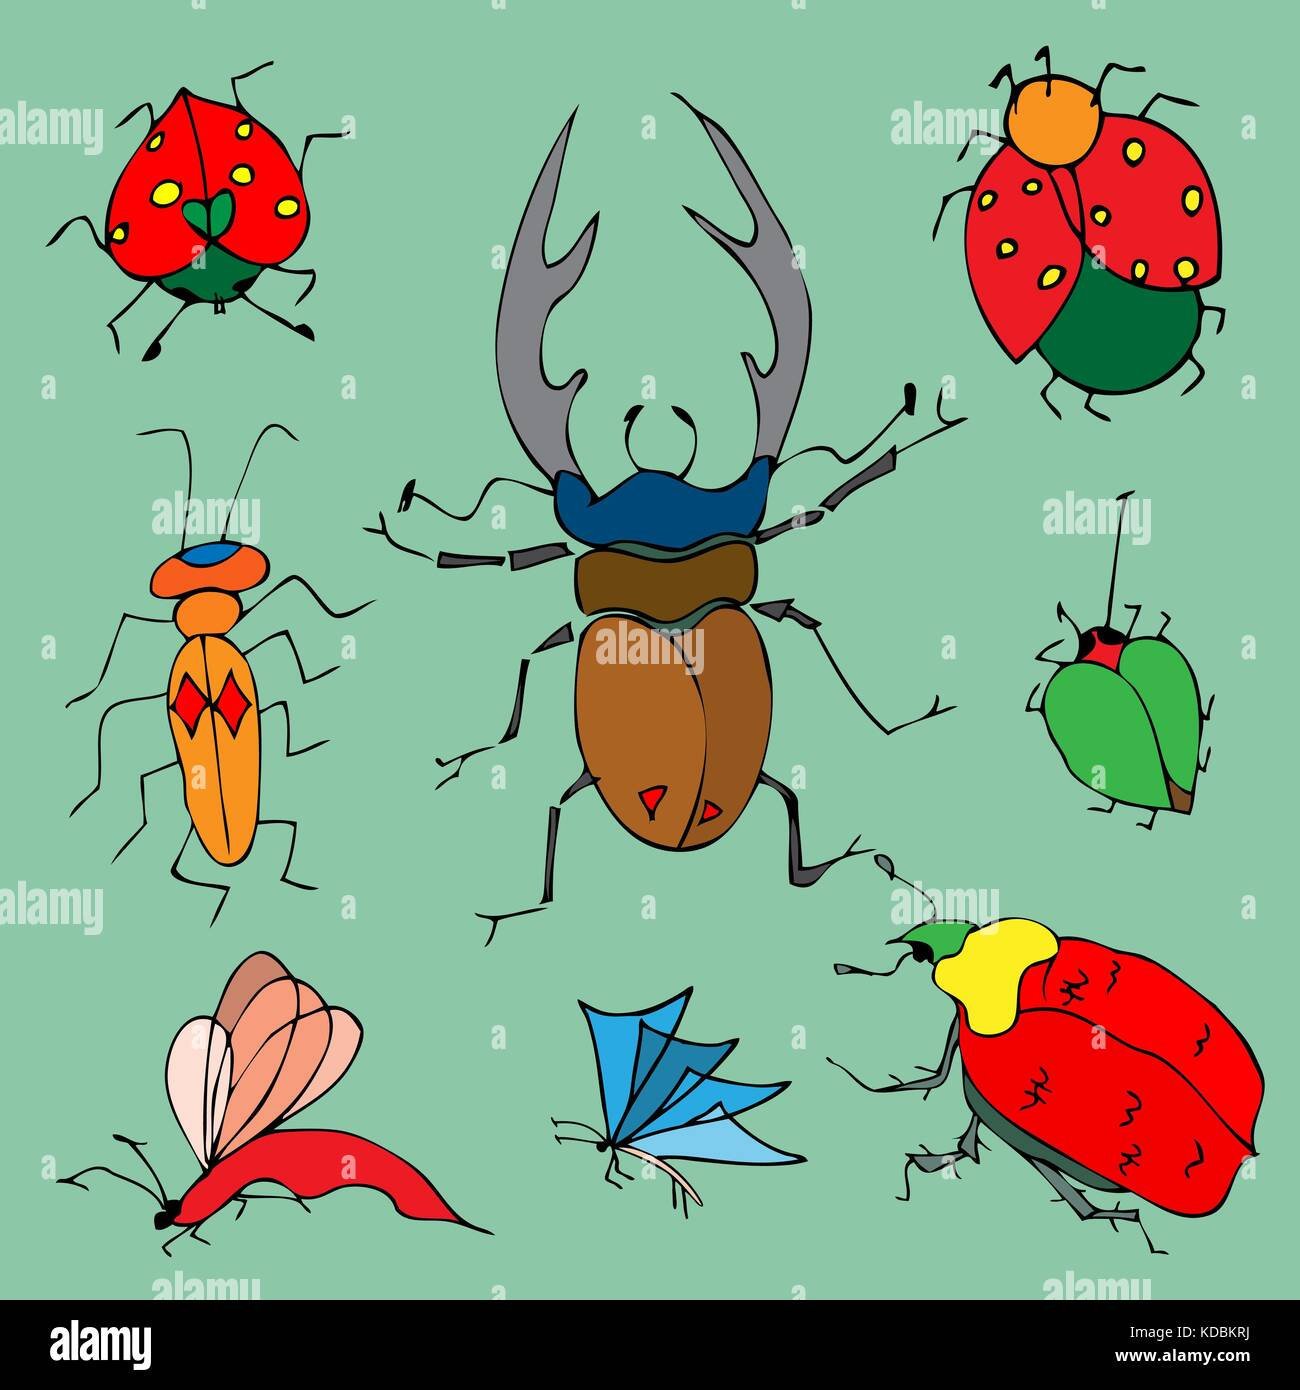 Cricket Insect Cute Stock Photos & Cricket Insect Cute Stock Images ...